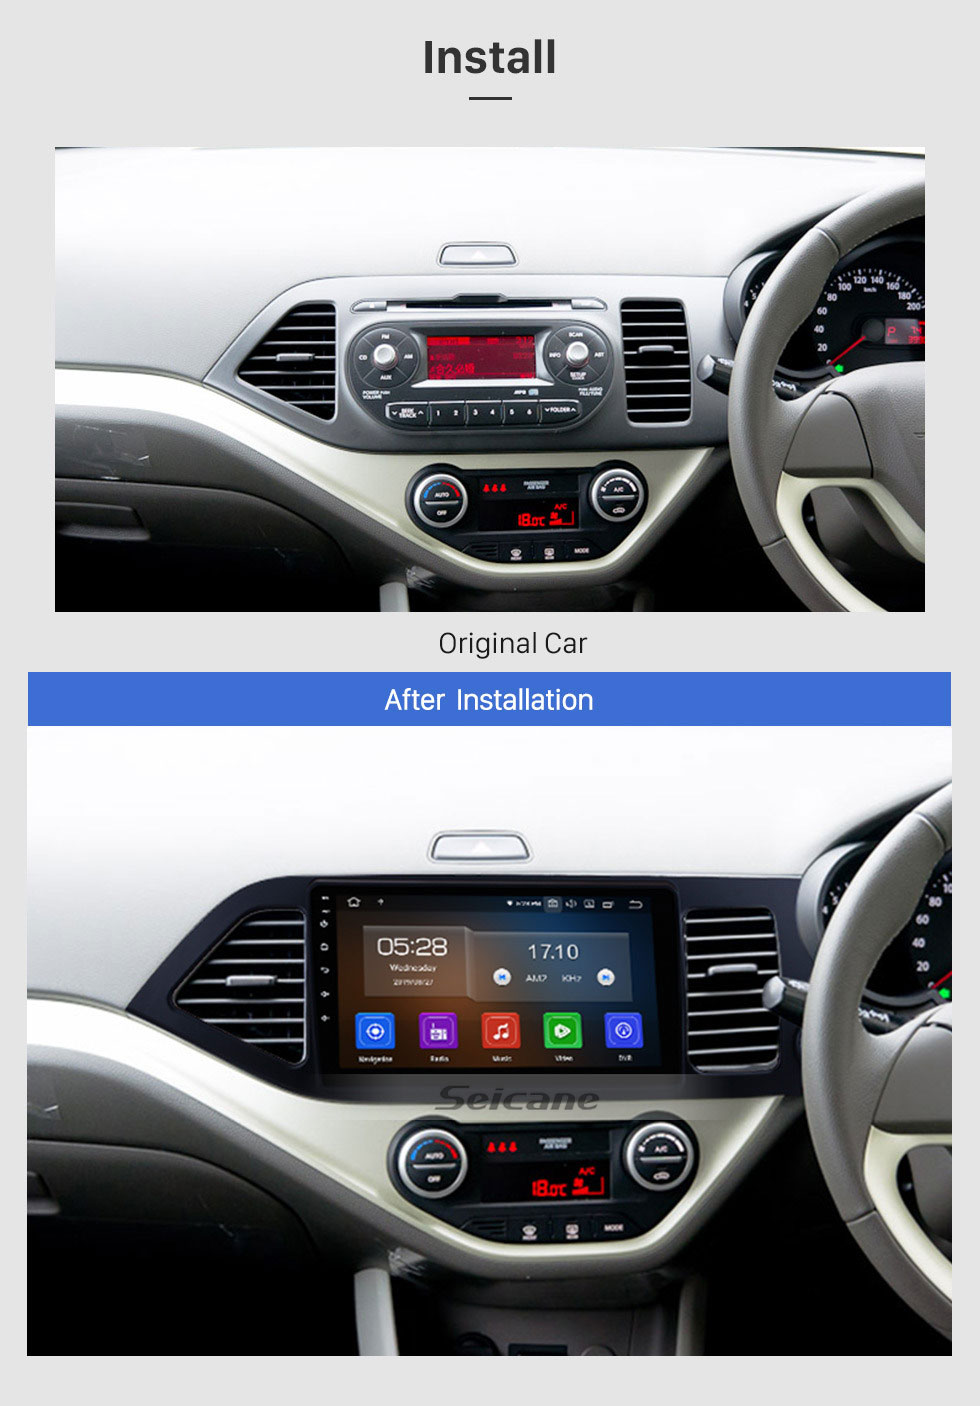 Seicane 9 Inch Android 9.0 GPS navigation system Radio for 2011-2014 Kia Morning RHD Mirror link HD 1024*600 touch screen OBD2 DVR Rearview camera TV 1080P Video 3G WIFI Steering Wheel Control Bluetooth USB